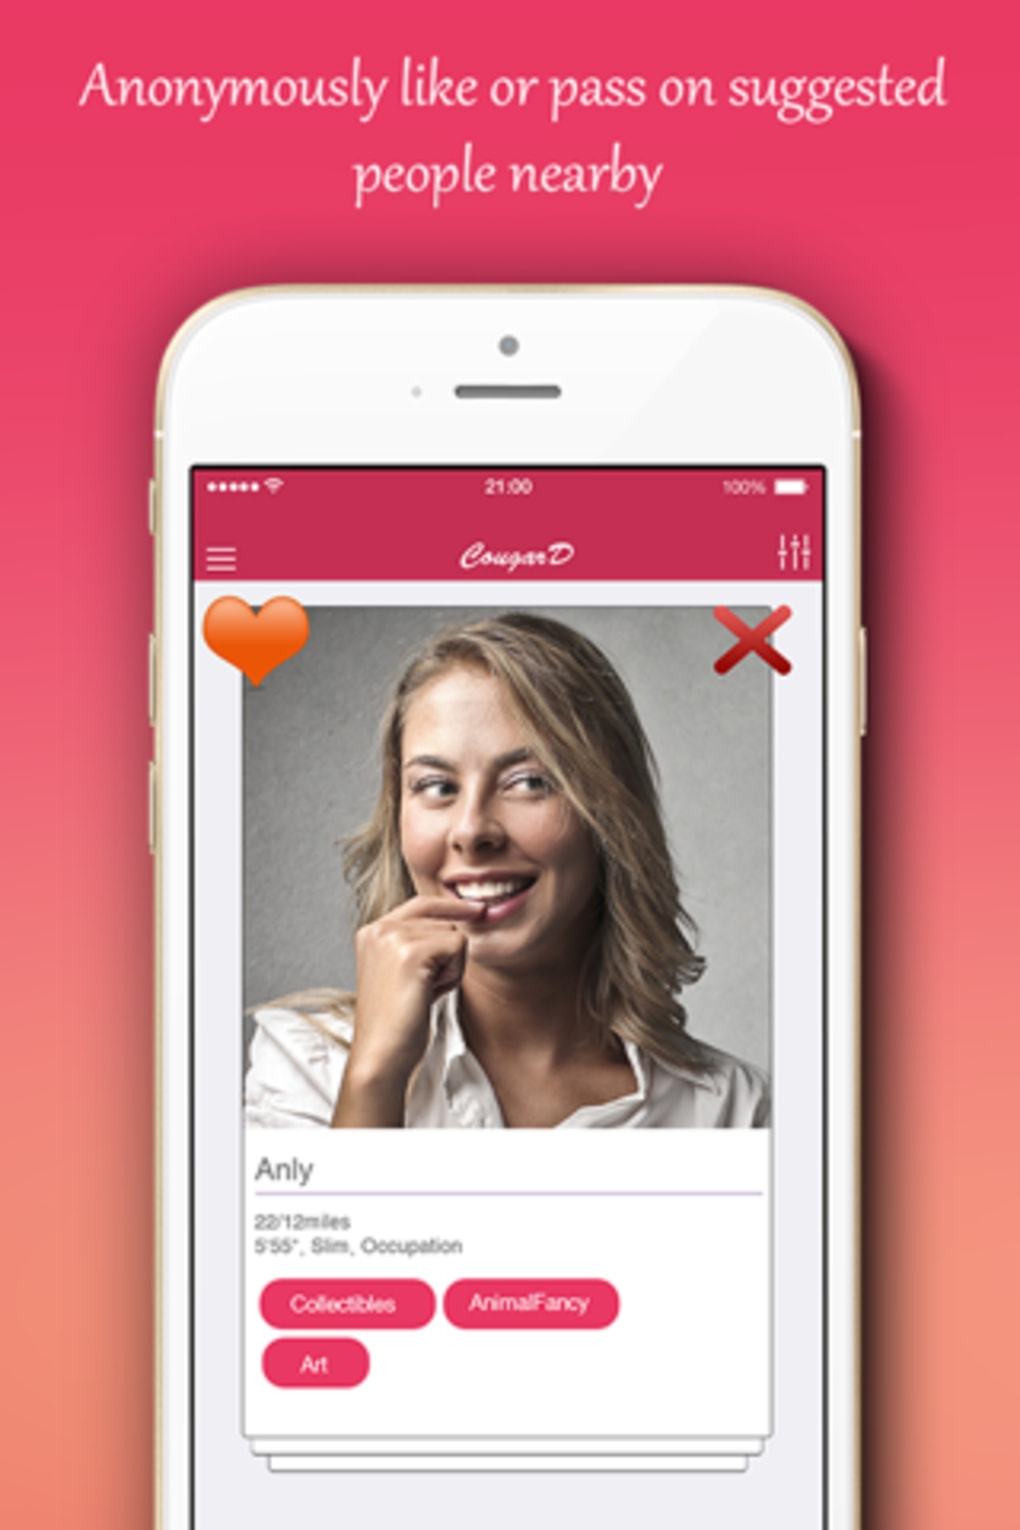 absoluut gratis Cougar dating site ze zegt dat we net dateren